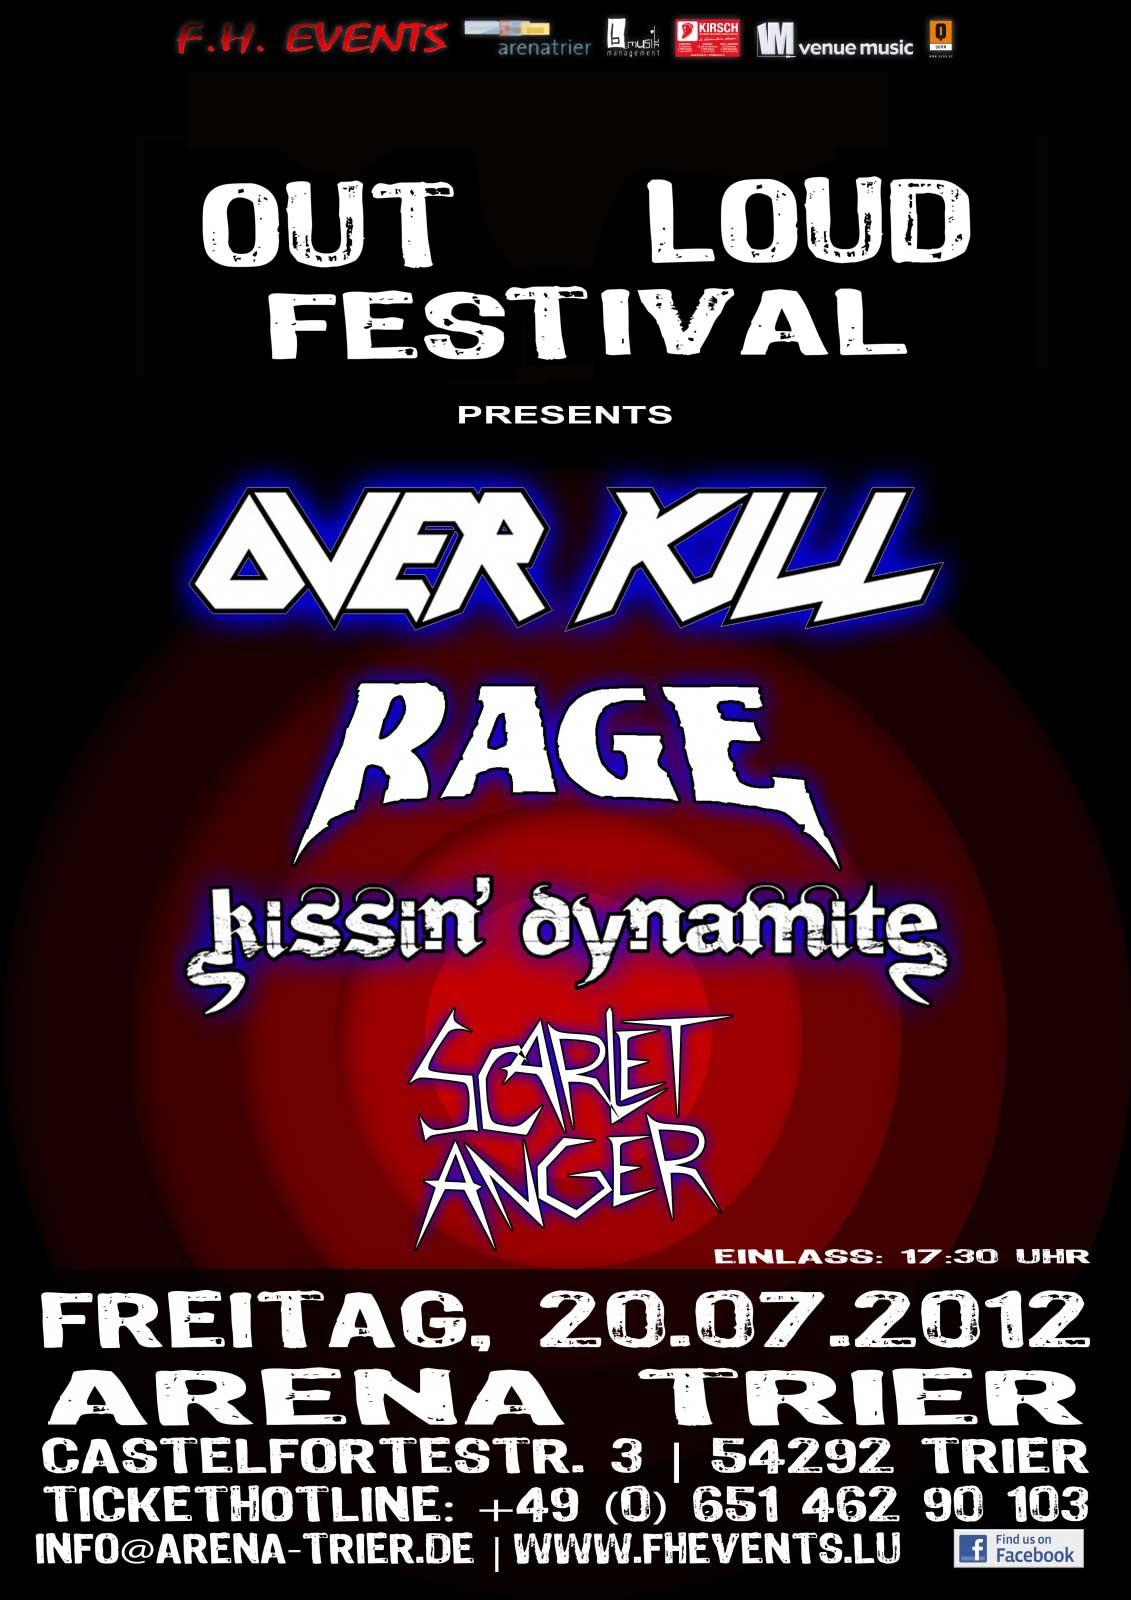 Out Loud Festival 2012 - 20.07.2012 - Trier, Arena mit Scarlet Anger, kissin' dynamite, Rage und Overkill